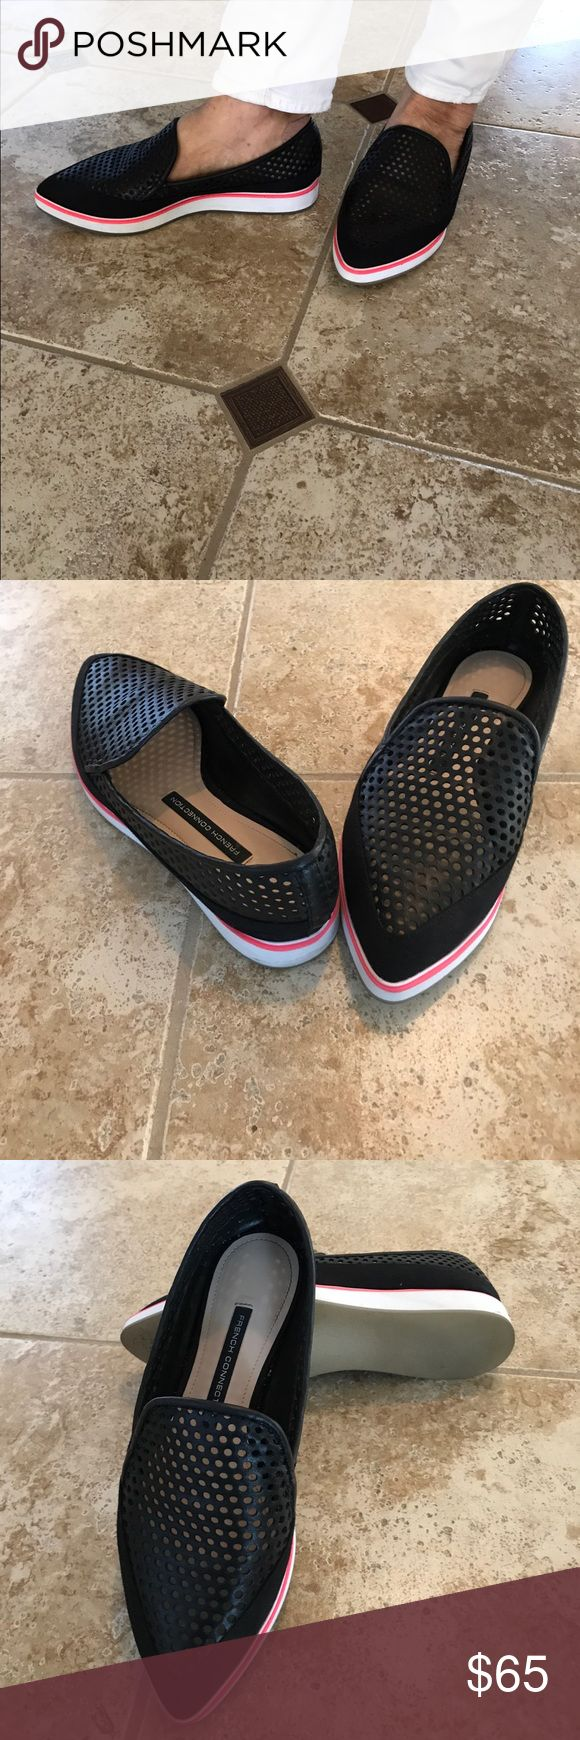 French connection excellent condition shoes Excellent condition French connection leather and fabric flat it's size 61/2 but fits 7 also French Connection Shoes Flats & Loafers